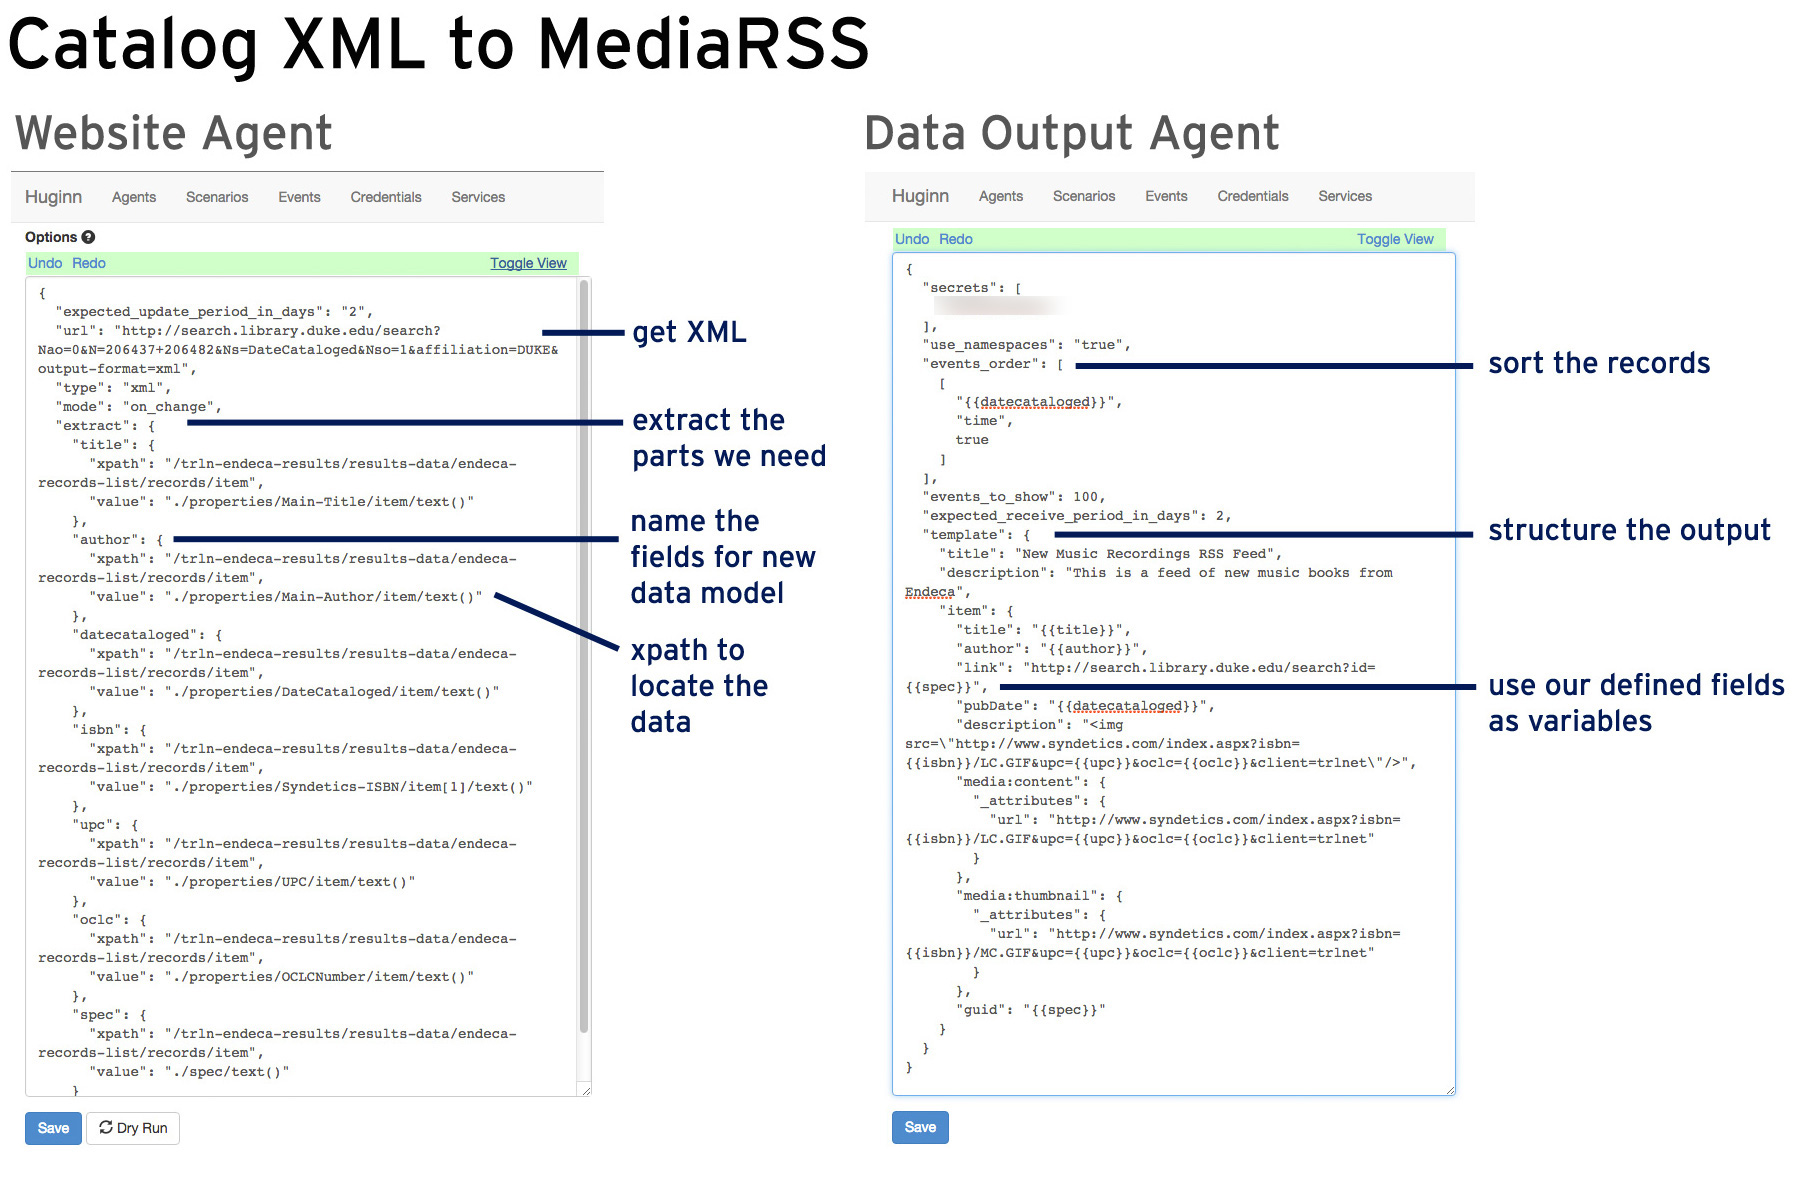 Huginn Agents for converting catalog data to a media-rich RSS feed for New Additions widgets.